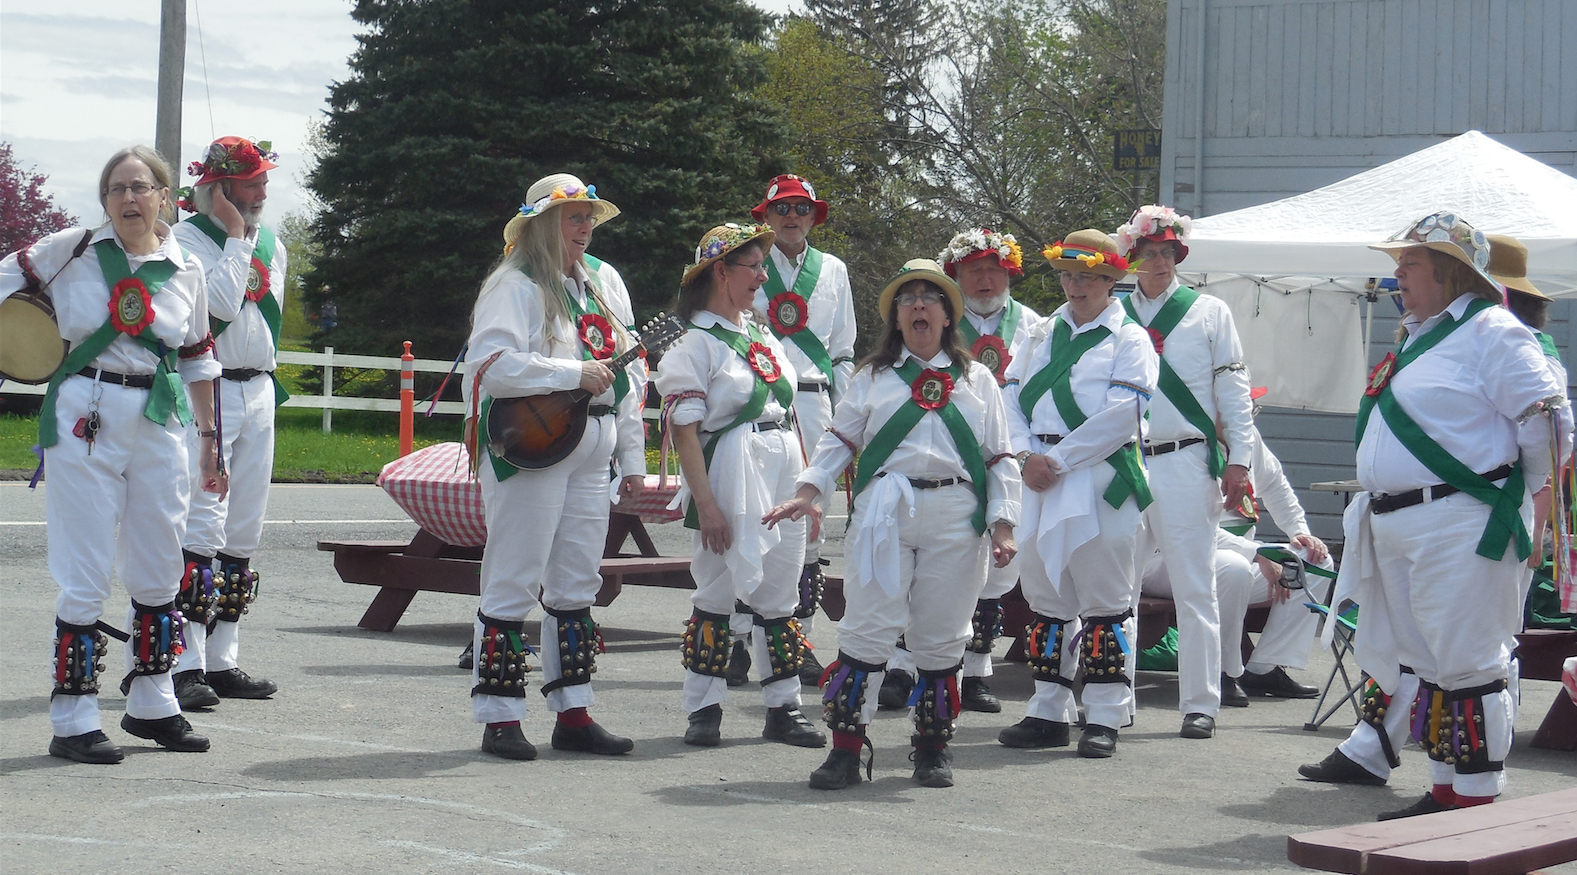 Pocking Brook Morris Dancers